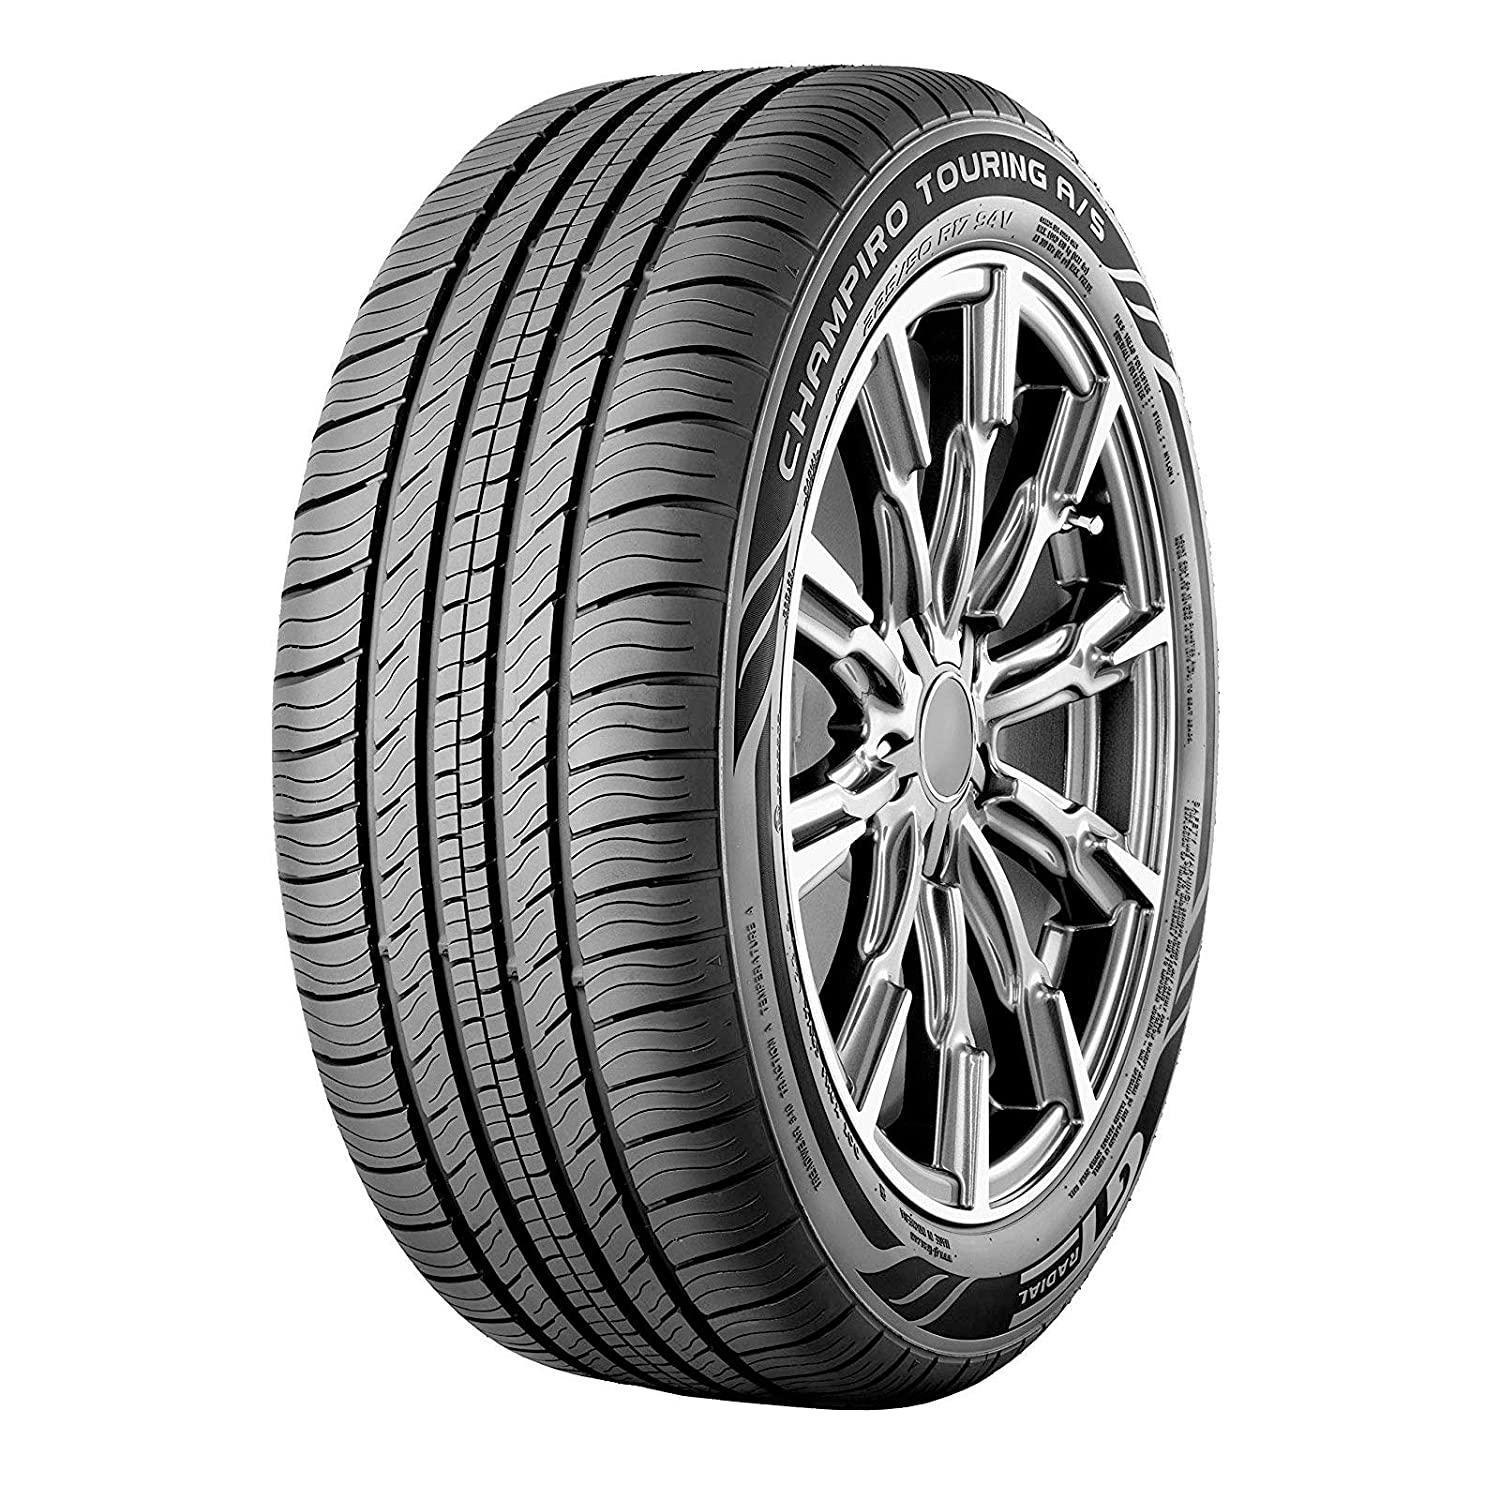 GT Radial Champiro Touring A/S all_ Season Radial Tire- One Size 102H